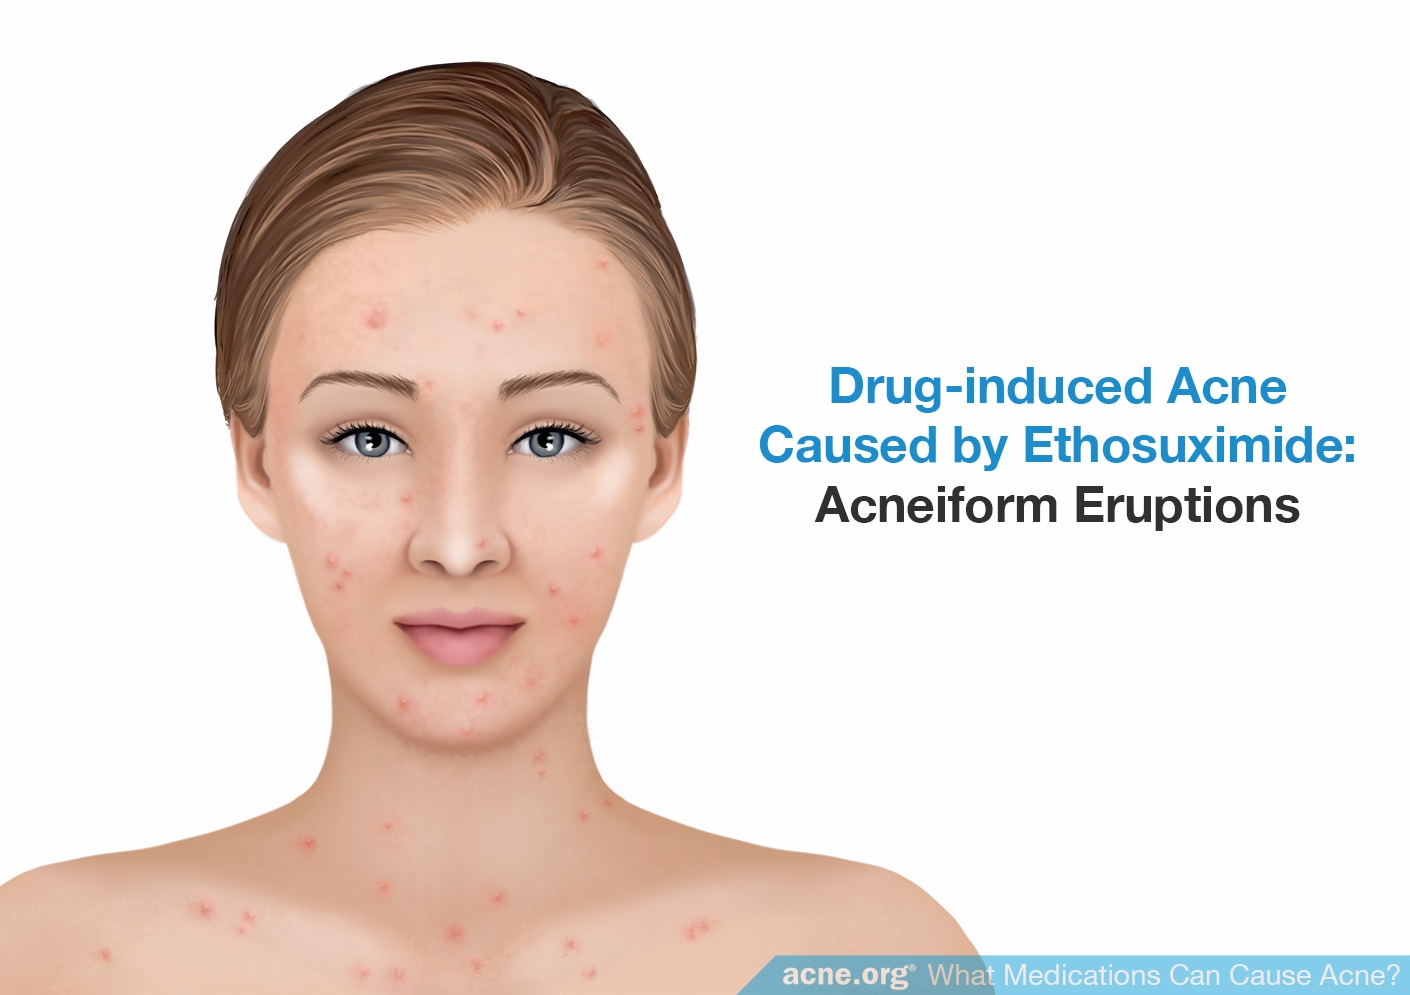 Drug-induced Acne Caused by Ethosuximide